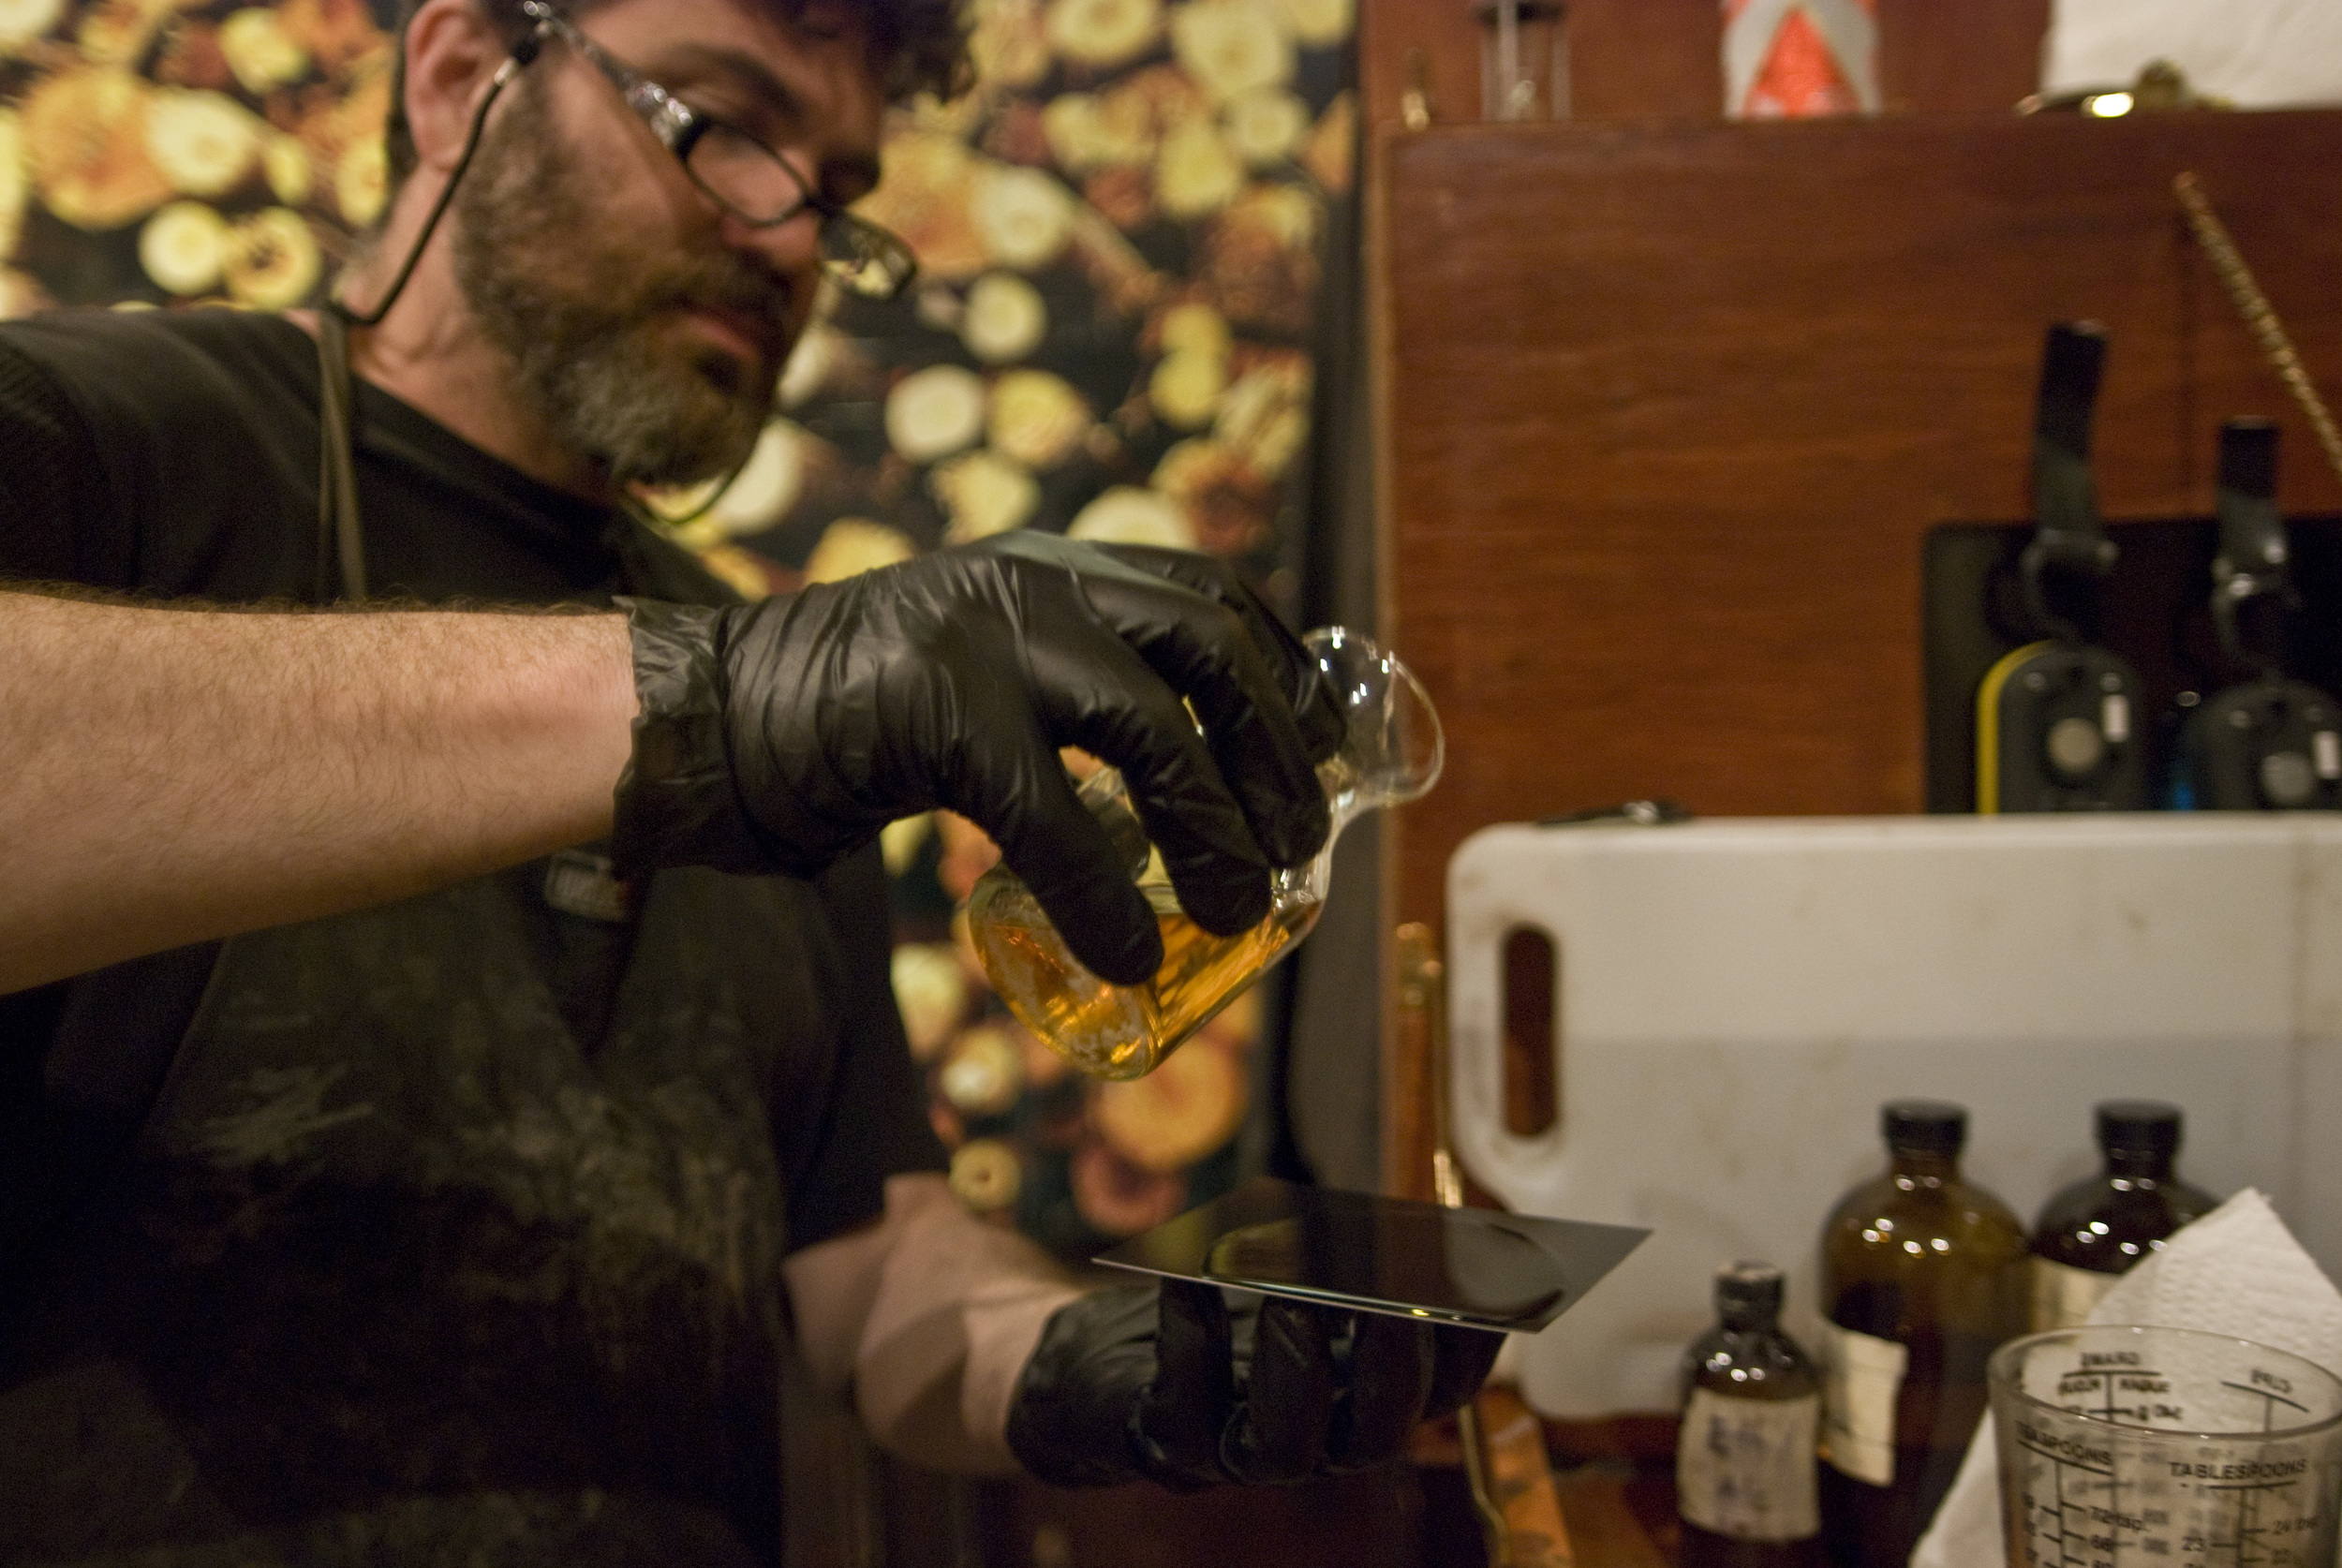 Scott pouring the syrupy Collodion onto a fresh metal plate- the first step in the tintype process